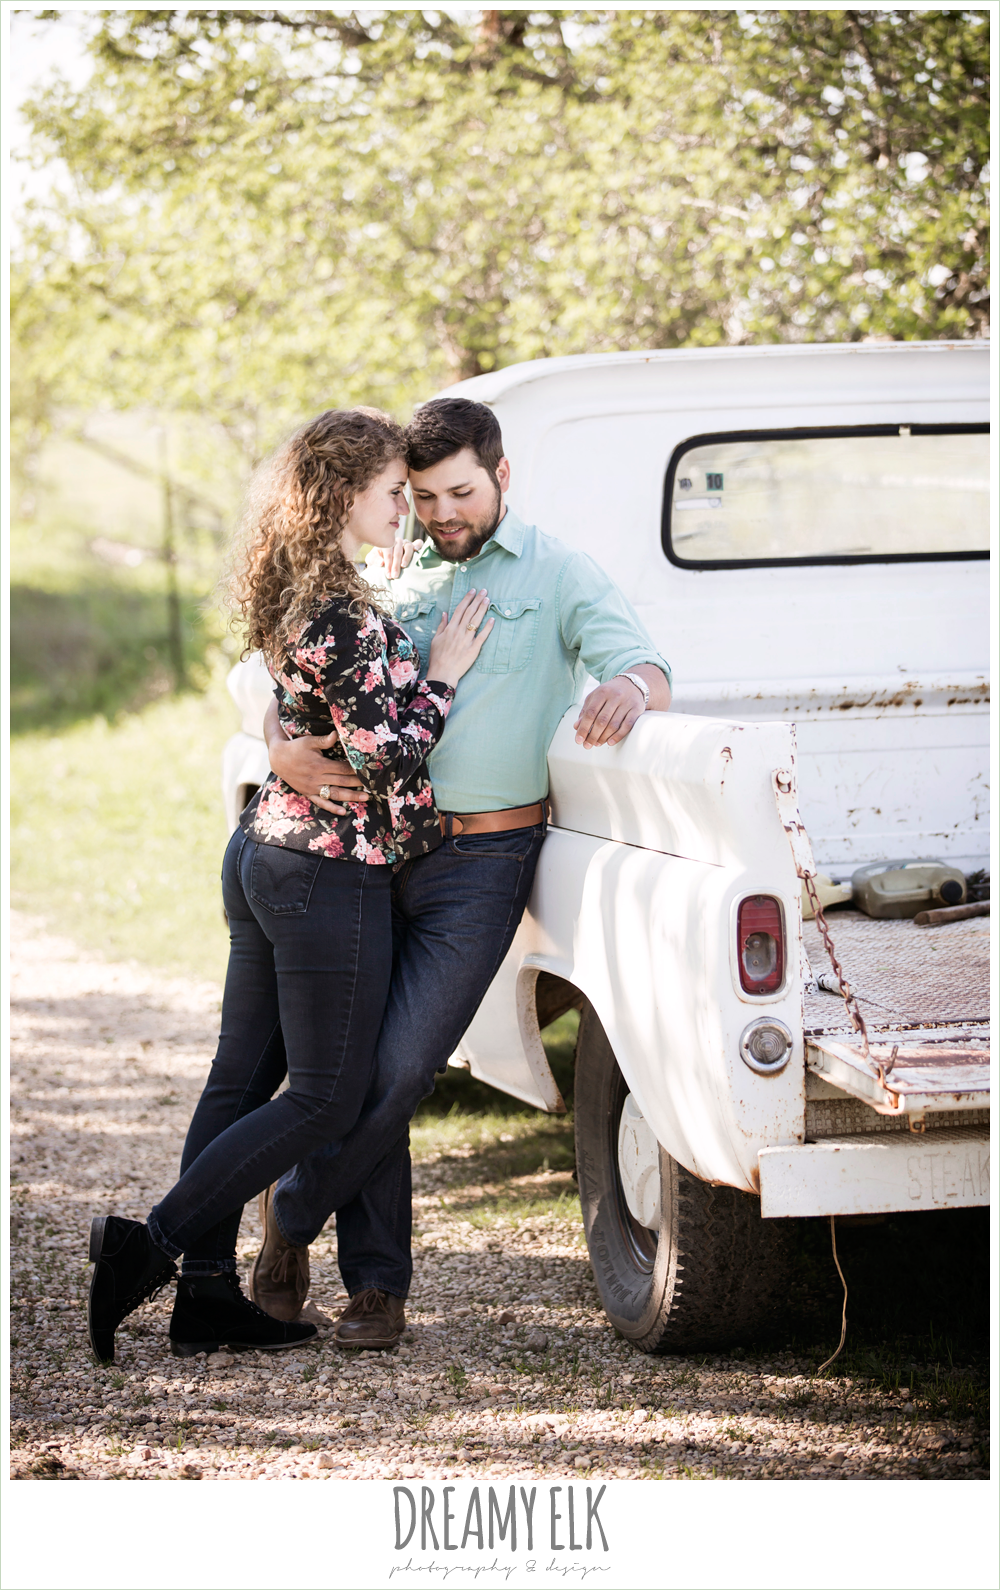 vintage truck, outdoor spring farm engagement photo, austin, texas {dreamy elk photography and design}